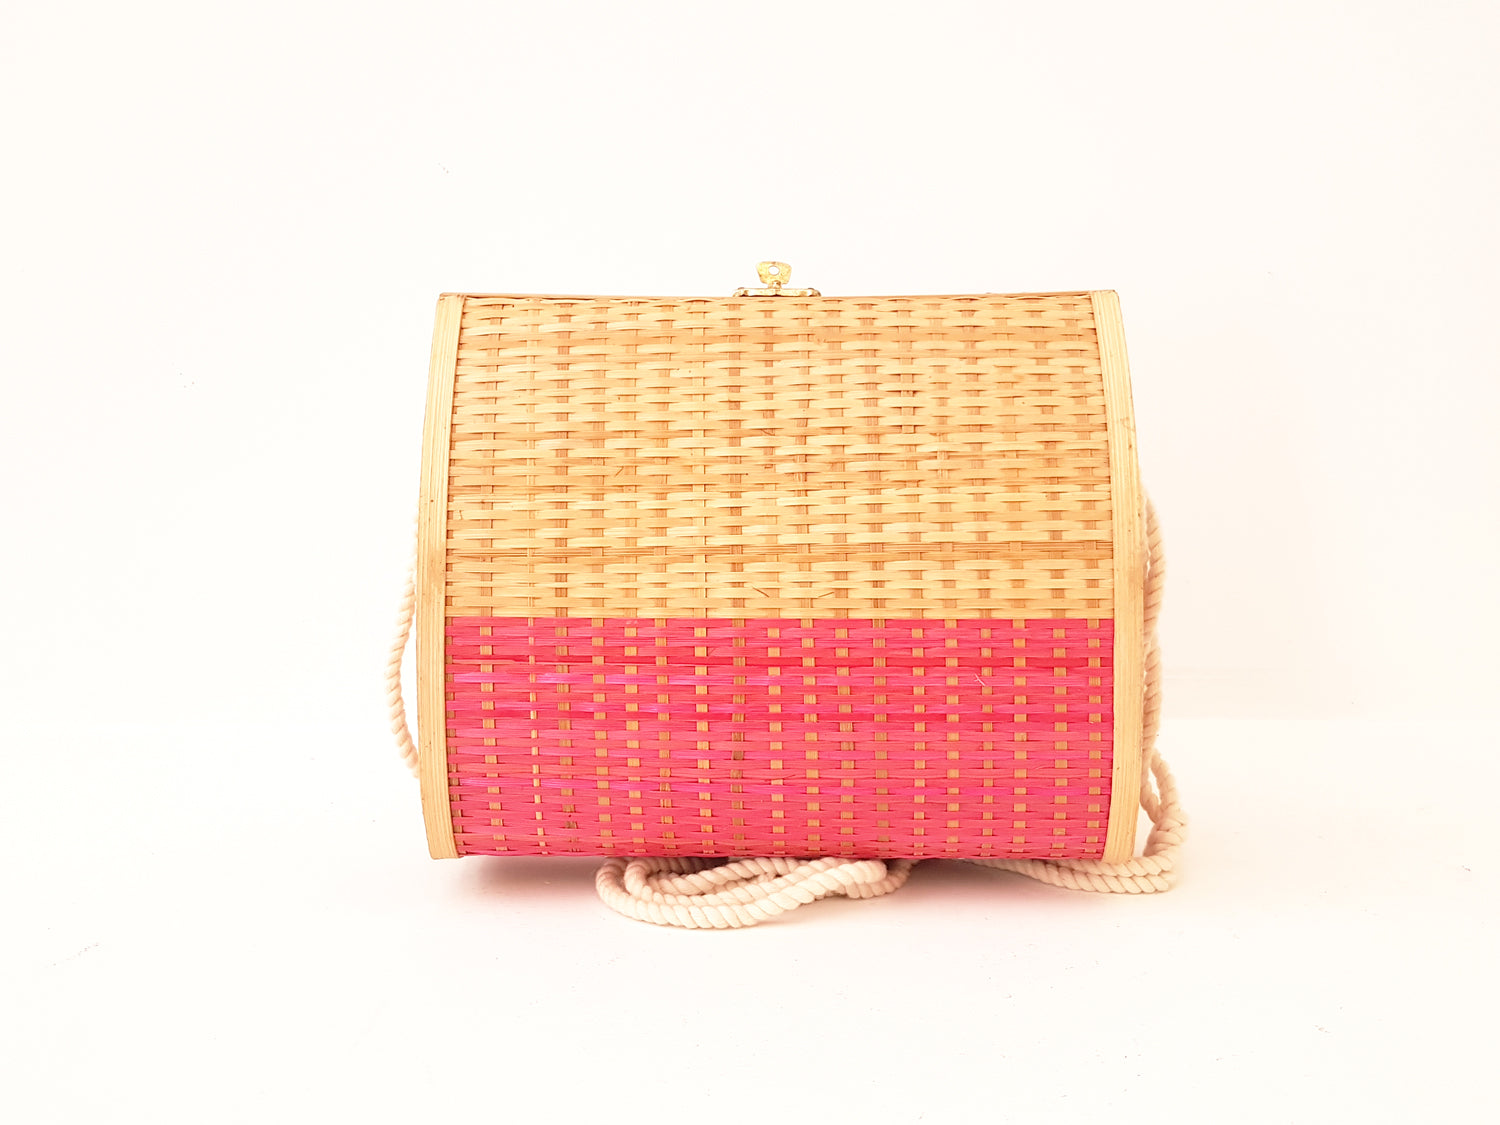 BAG MANACOR - Bolso Clutch de Tireta Pintado a Mano